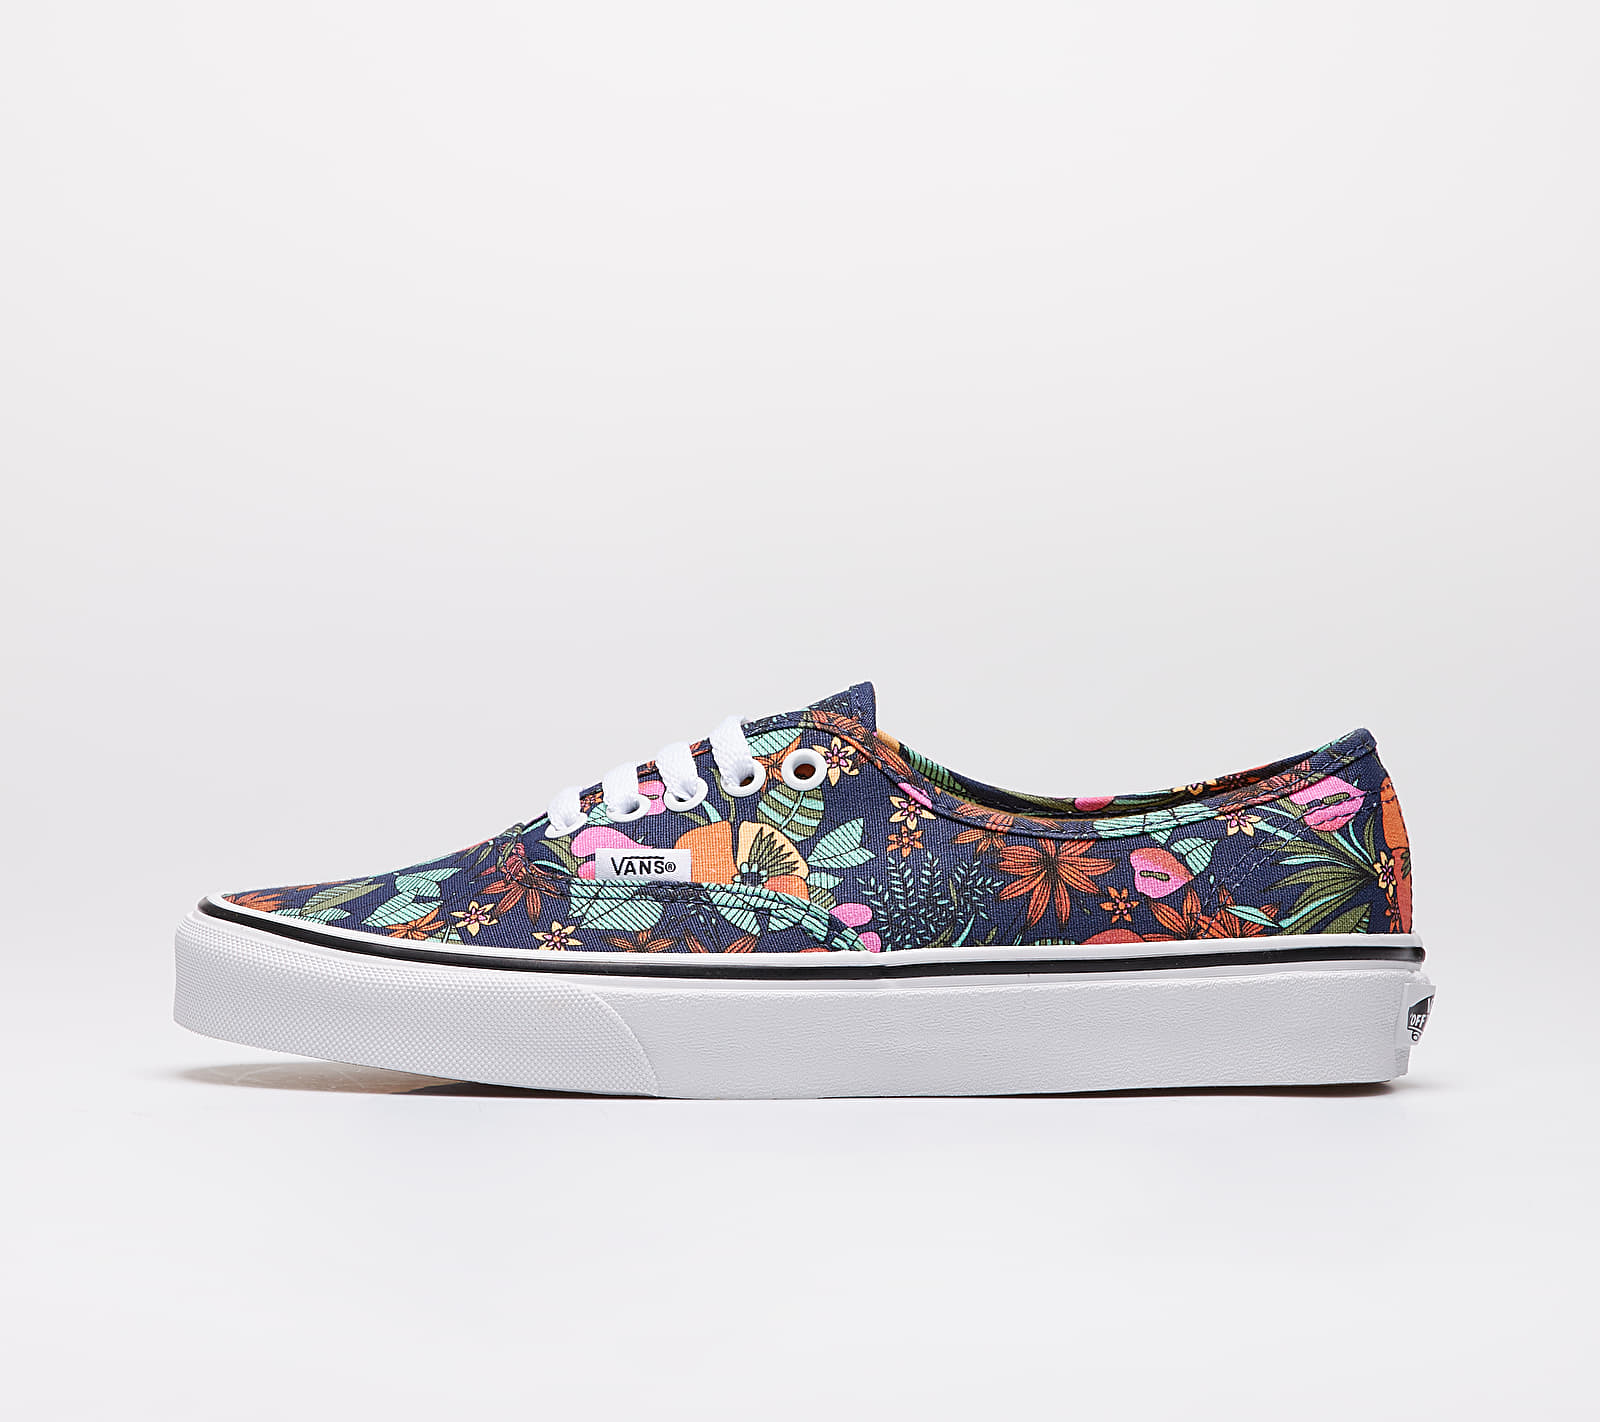 Vans Authentic (Multi Tropic) Floral/ True White VN0A2Z5IWH91